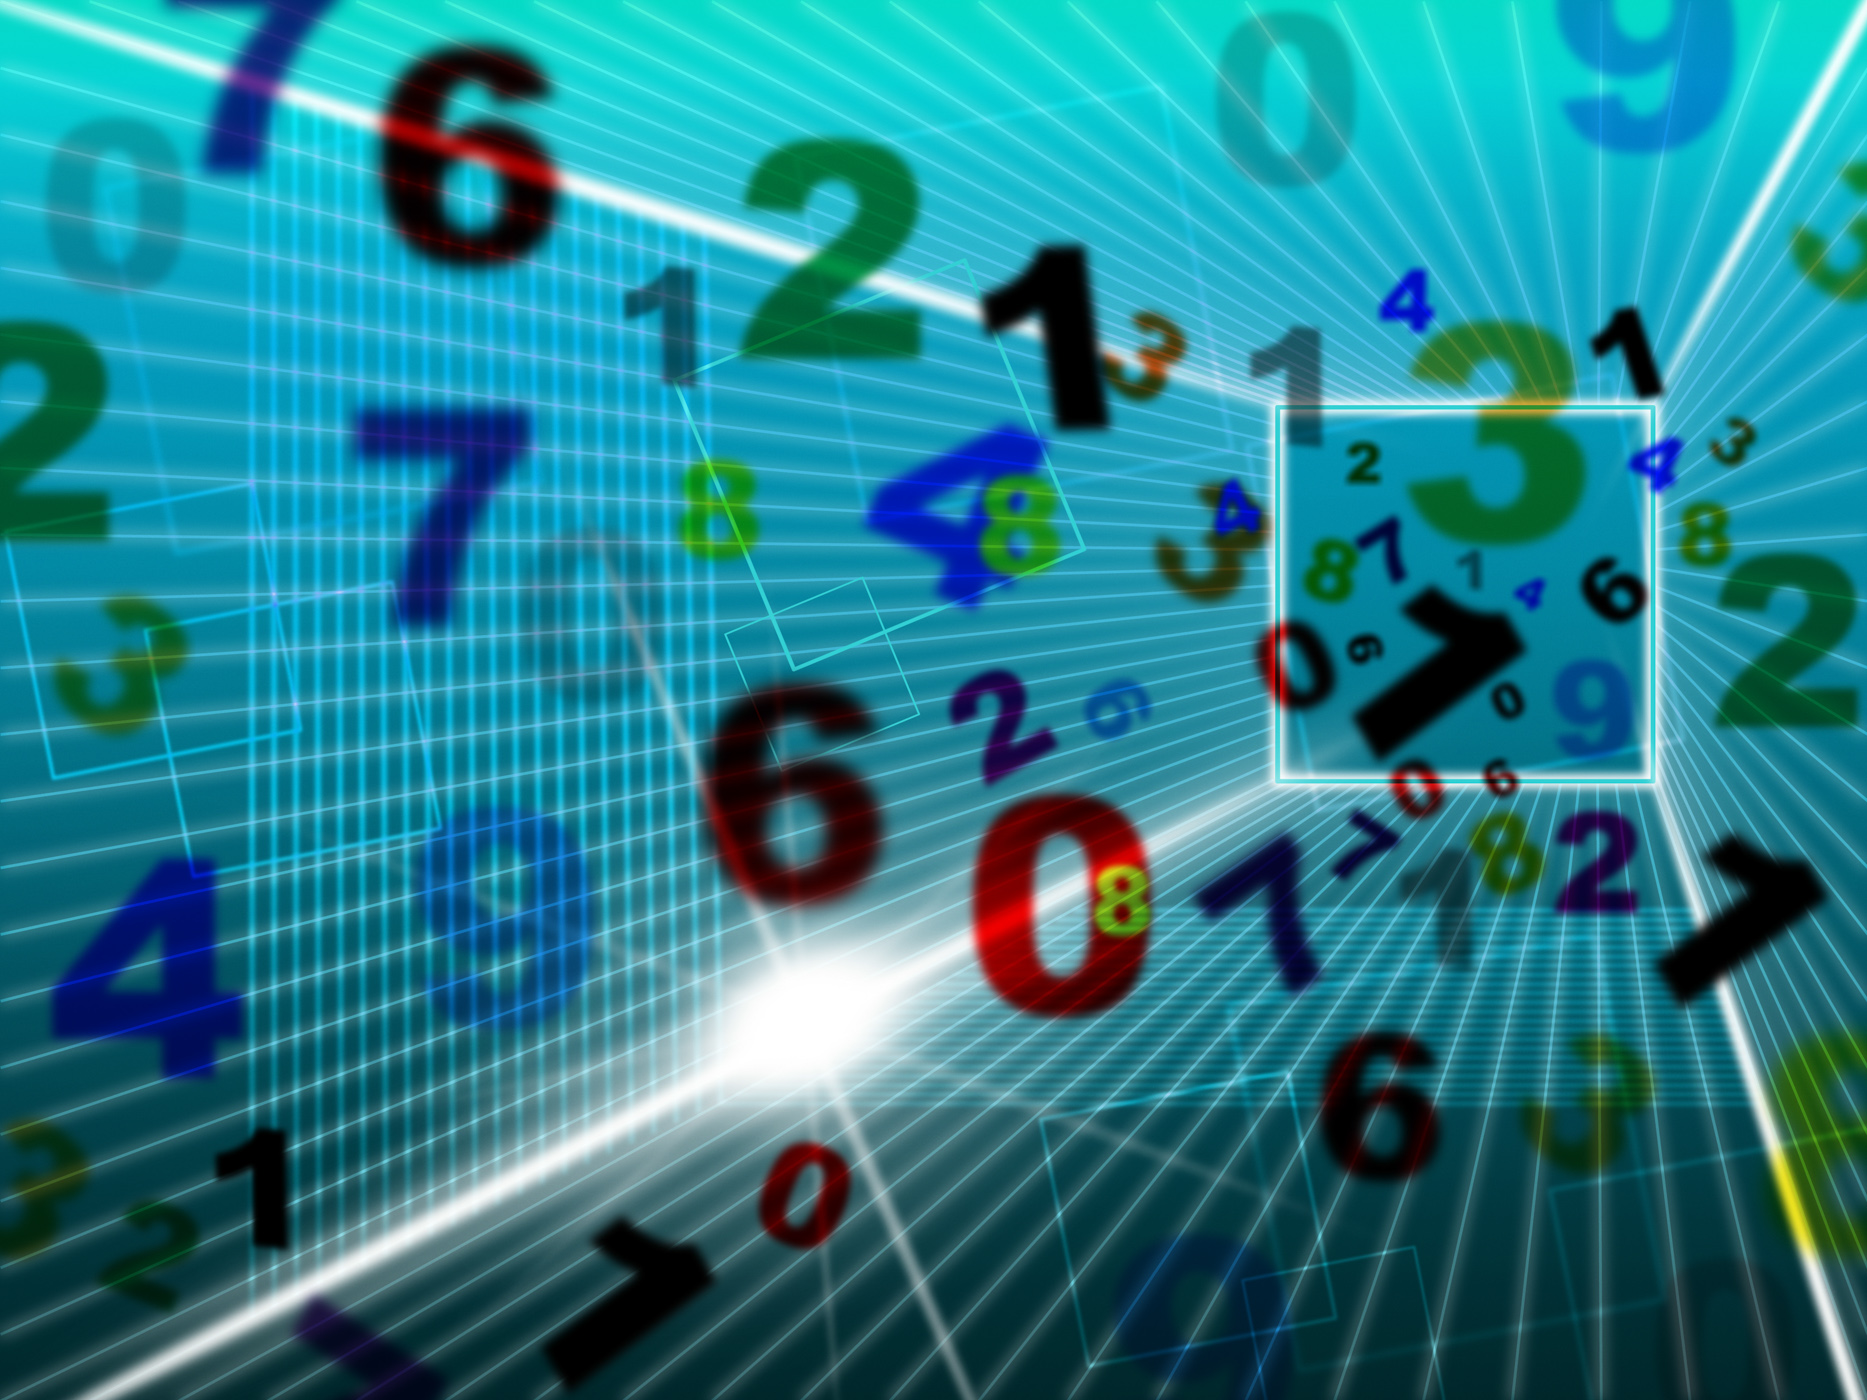 Maths Numbers Represents High Tech And College, Computing, Maths, Tutoring, Training, HQ Photo